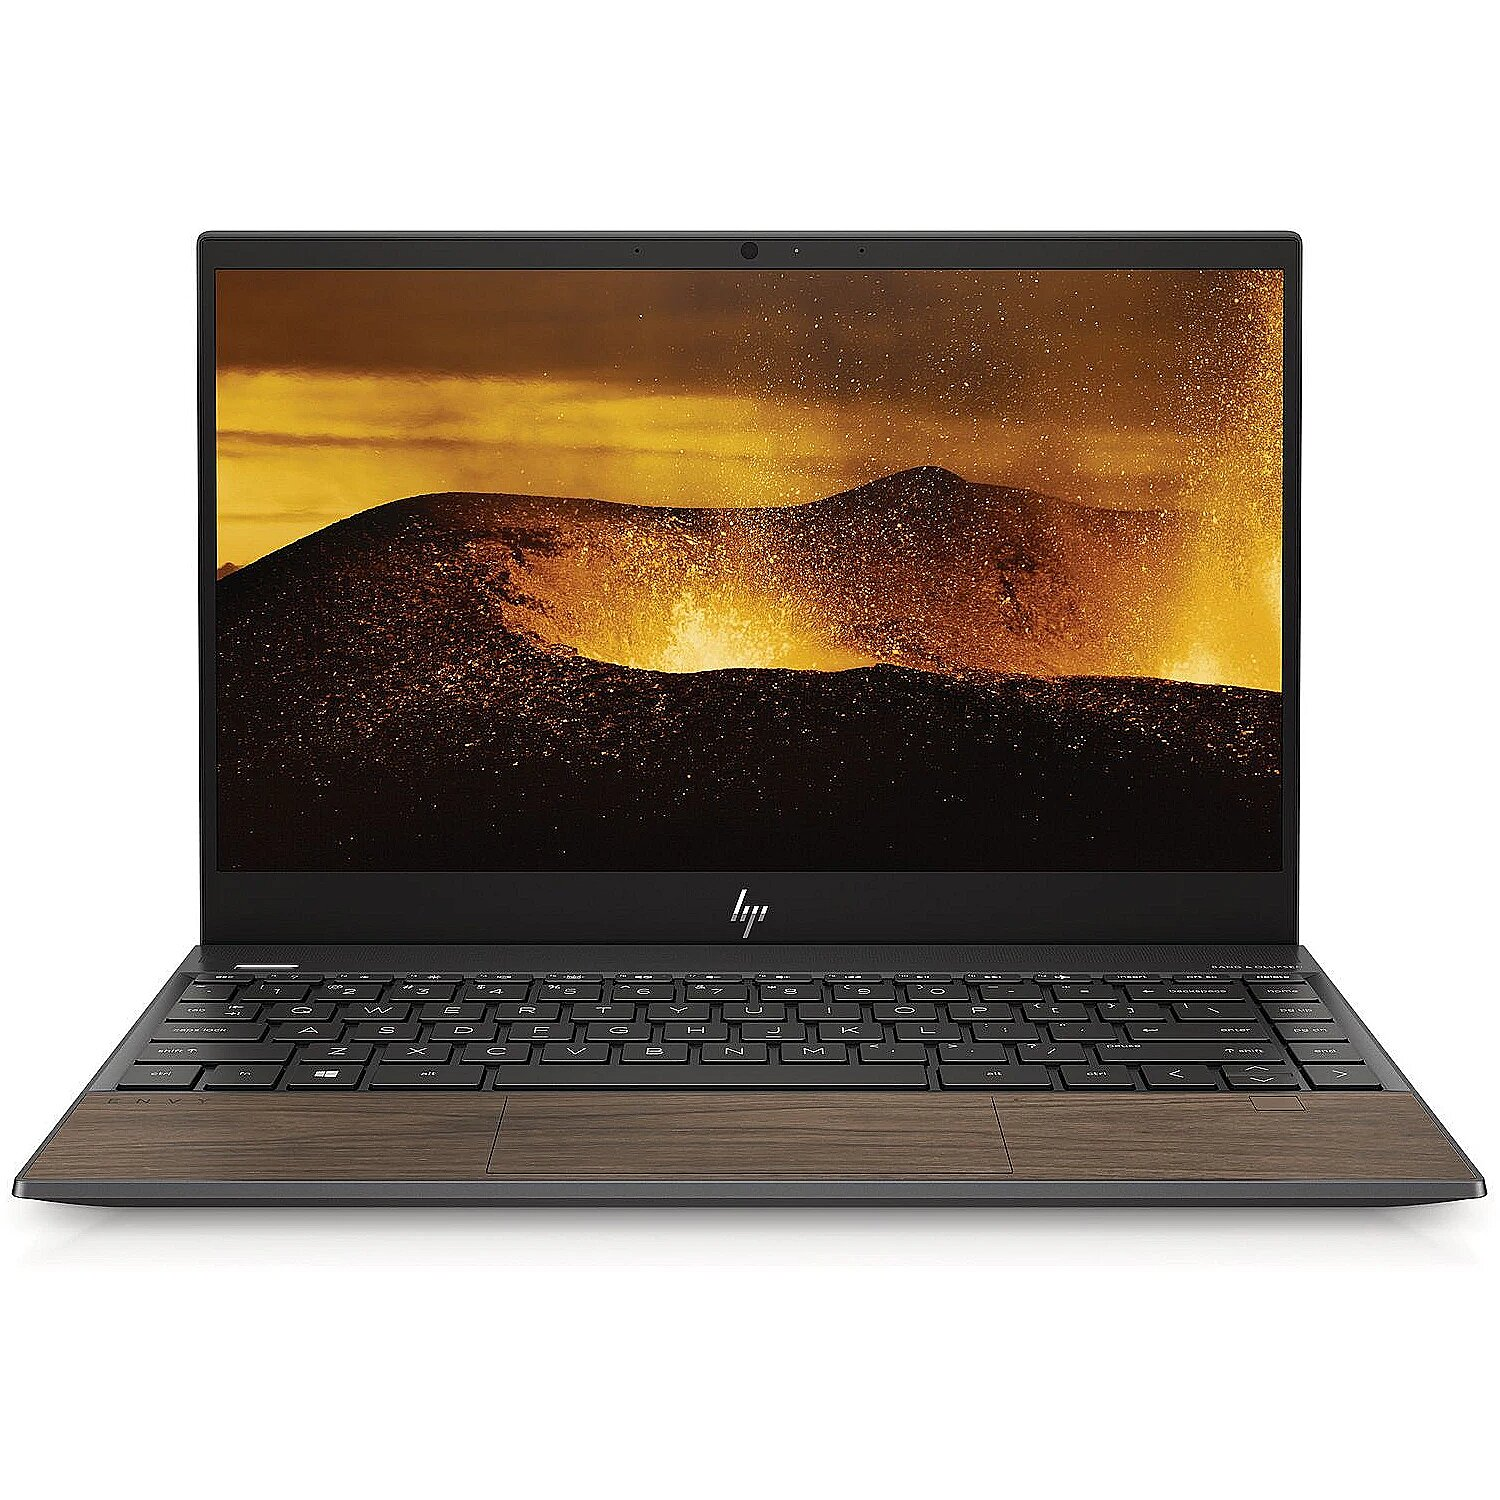 Hewlett Packard ENVY 13 Nightfall Black Wood, 13.3..